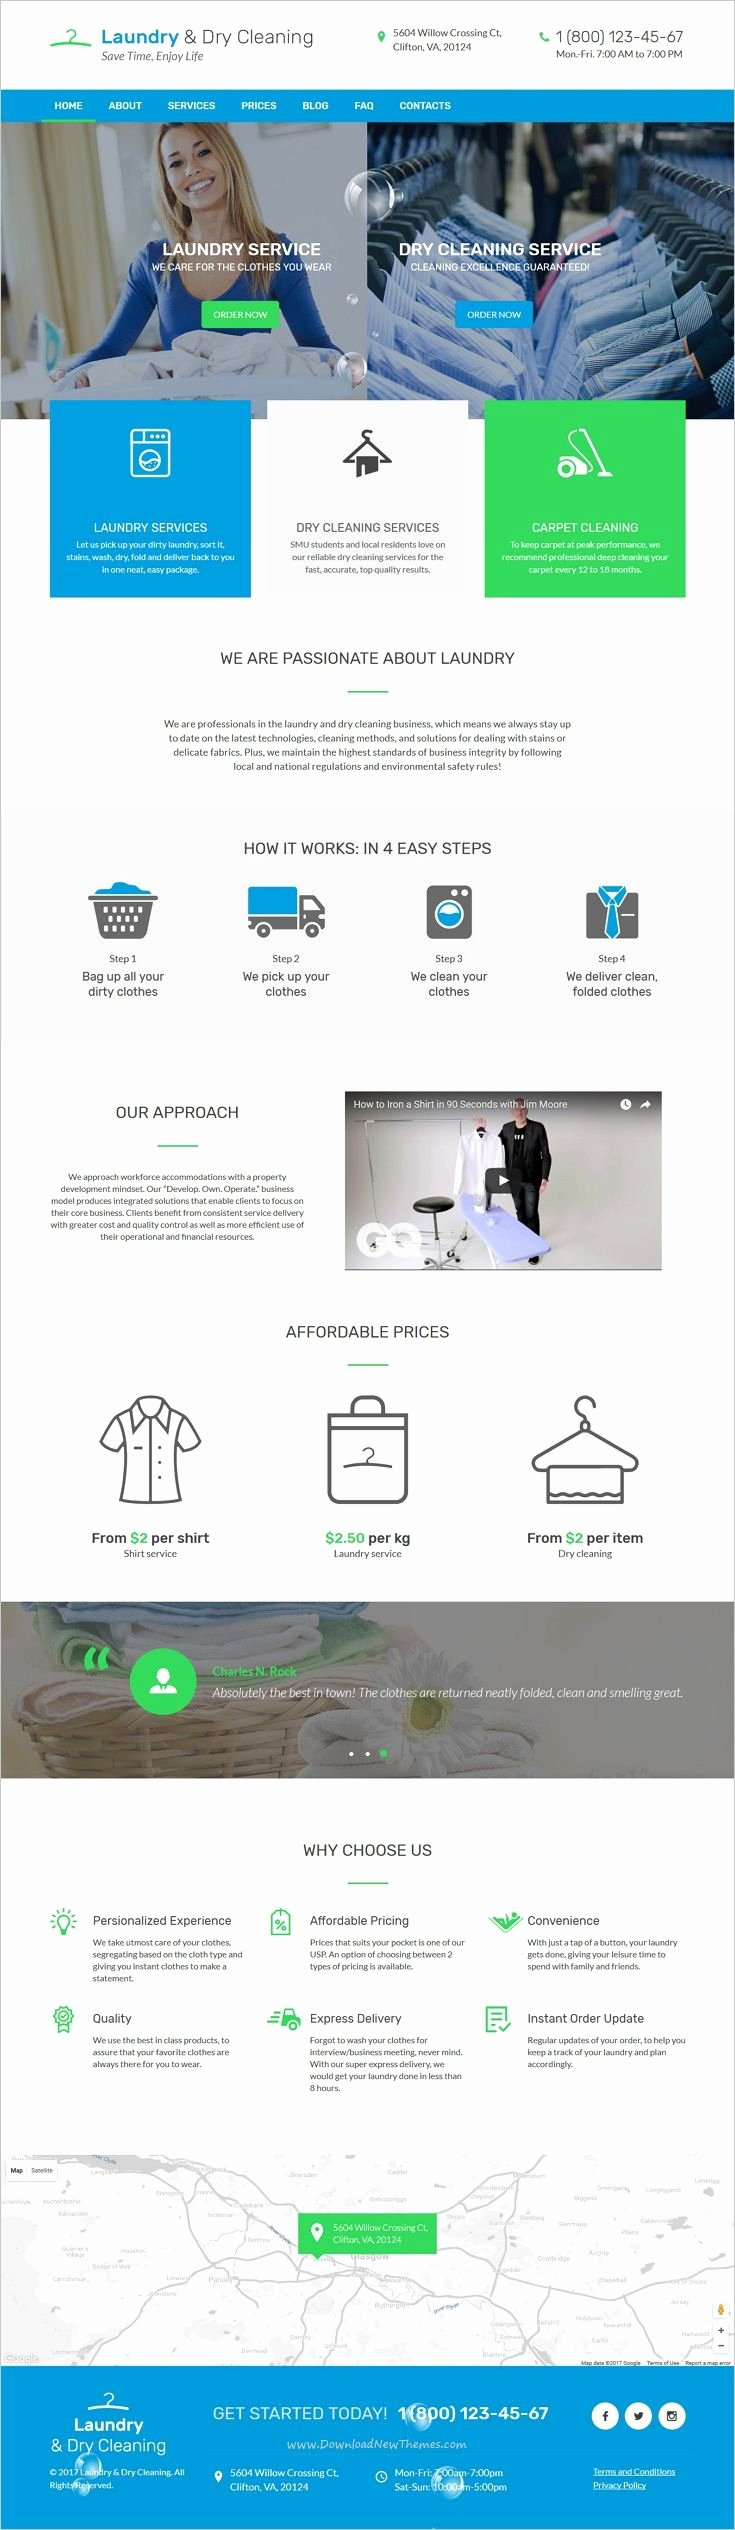 Cleaning Services Website Template Lovely Best 25 Dry Cleaning Services Ideas On Pinterest